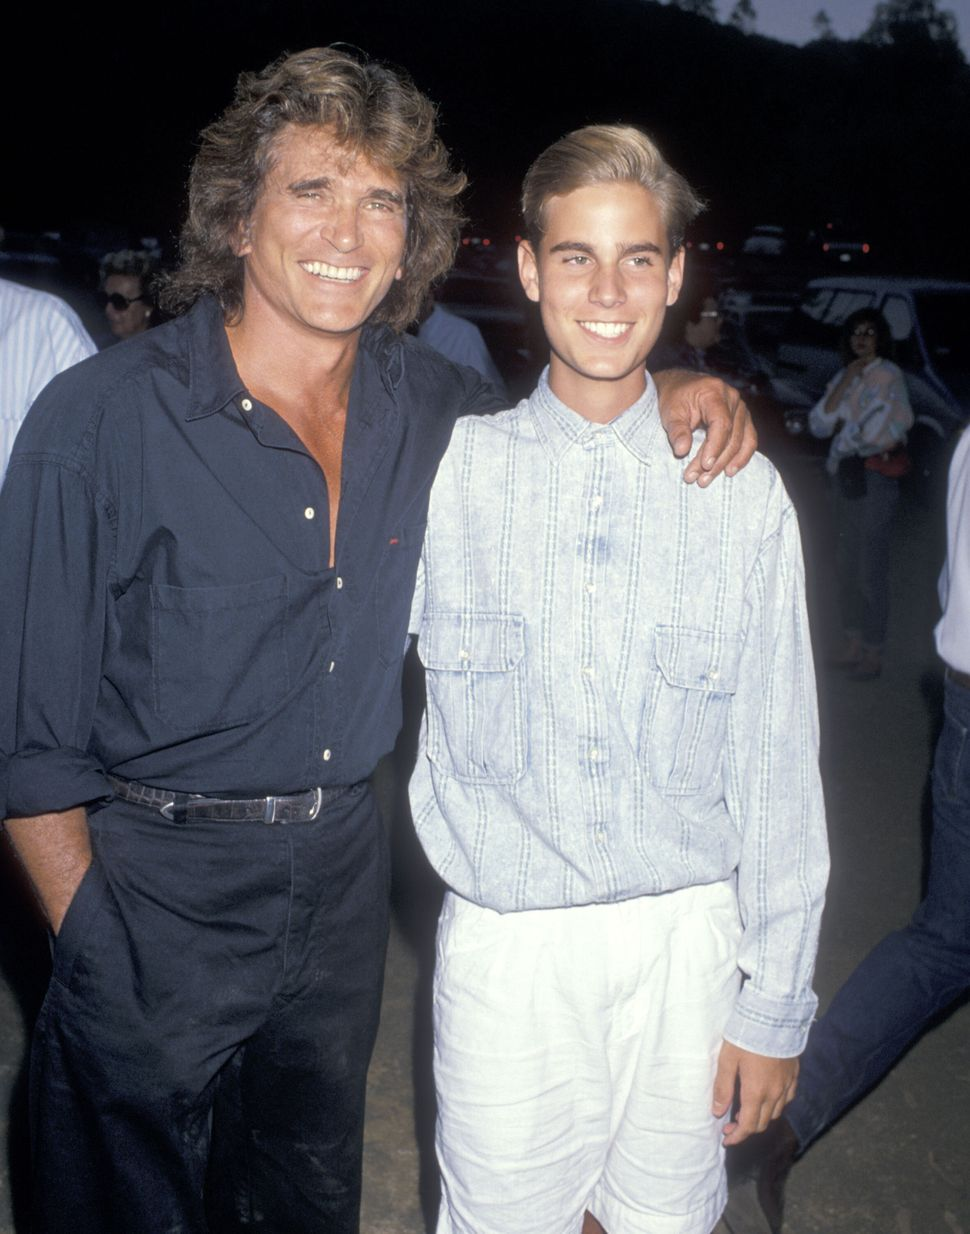 Michael Landon and Christopher Landon at a benefit gala on July 29, 1989, in Malibu, California.